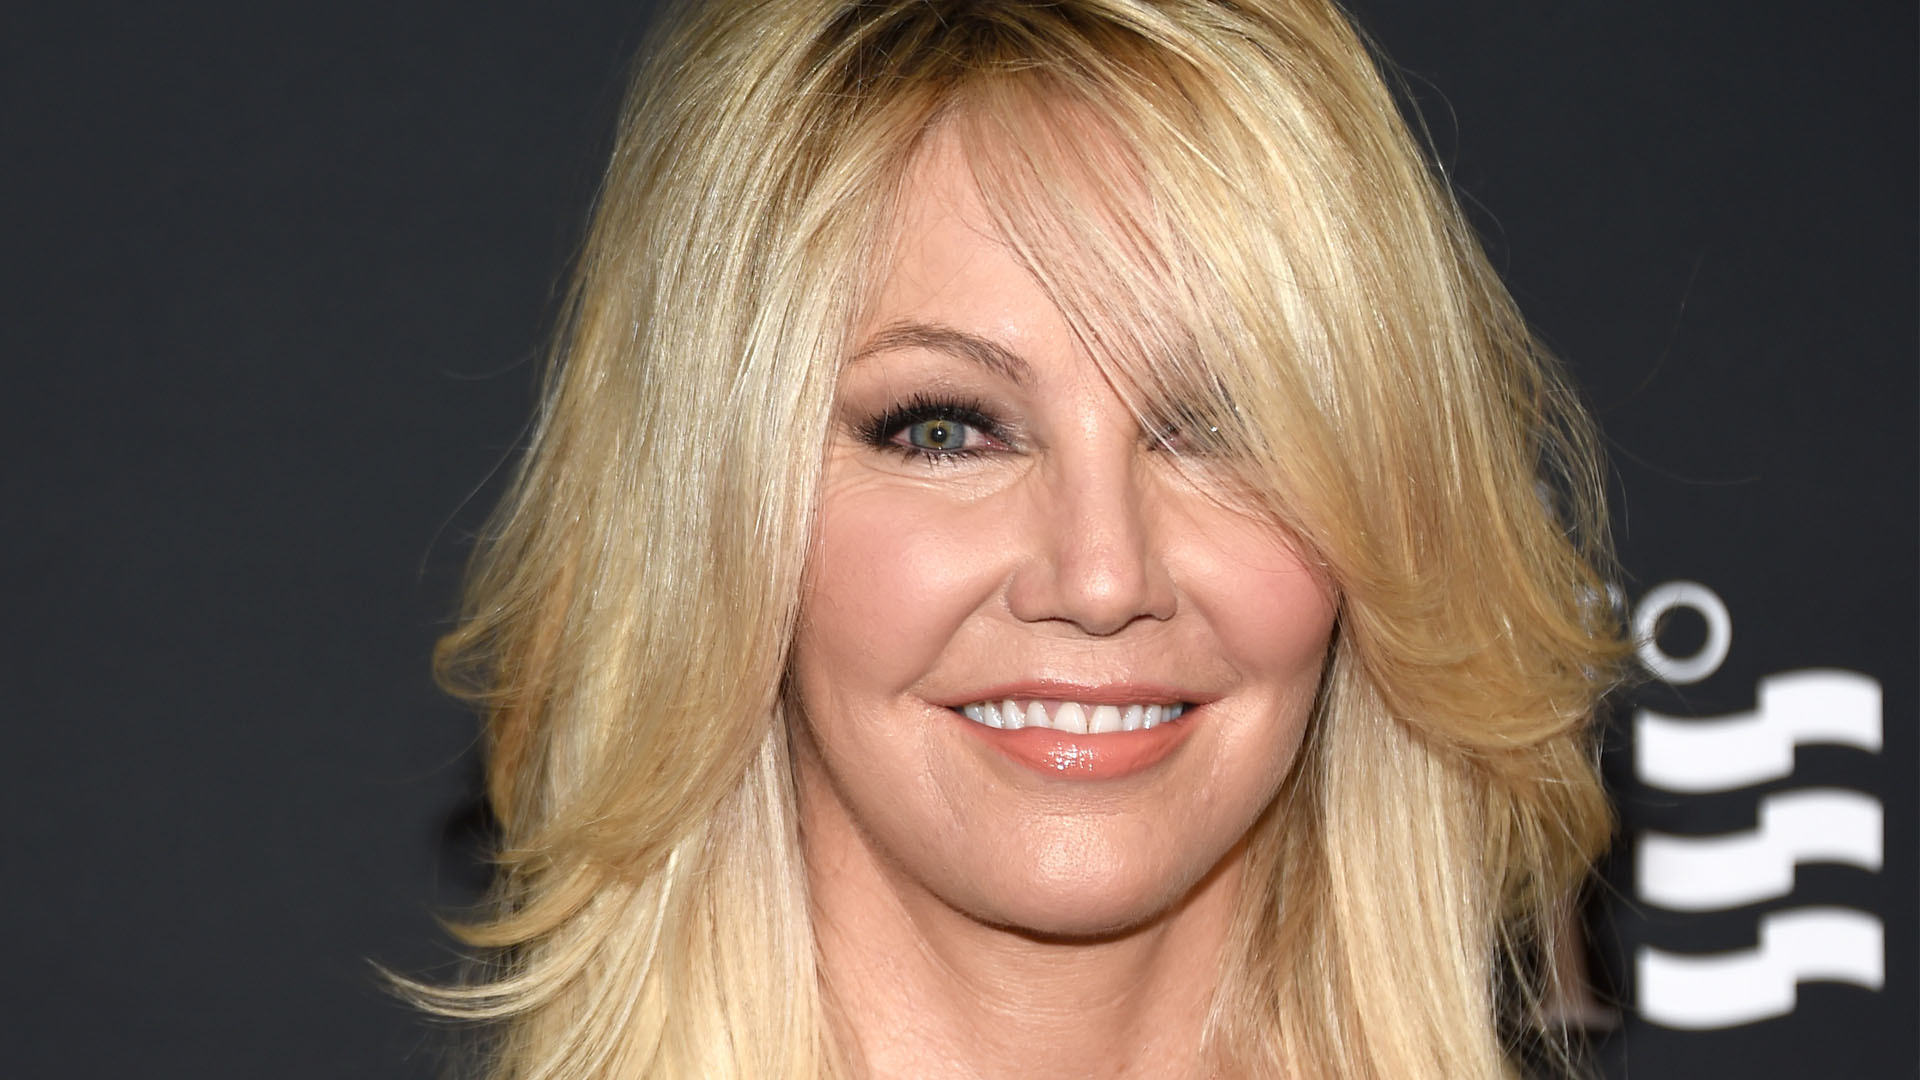 Heather Locklear Arrested Over Domestic Dispute: Details